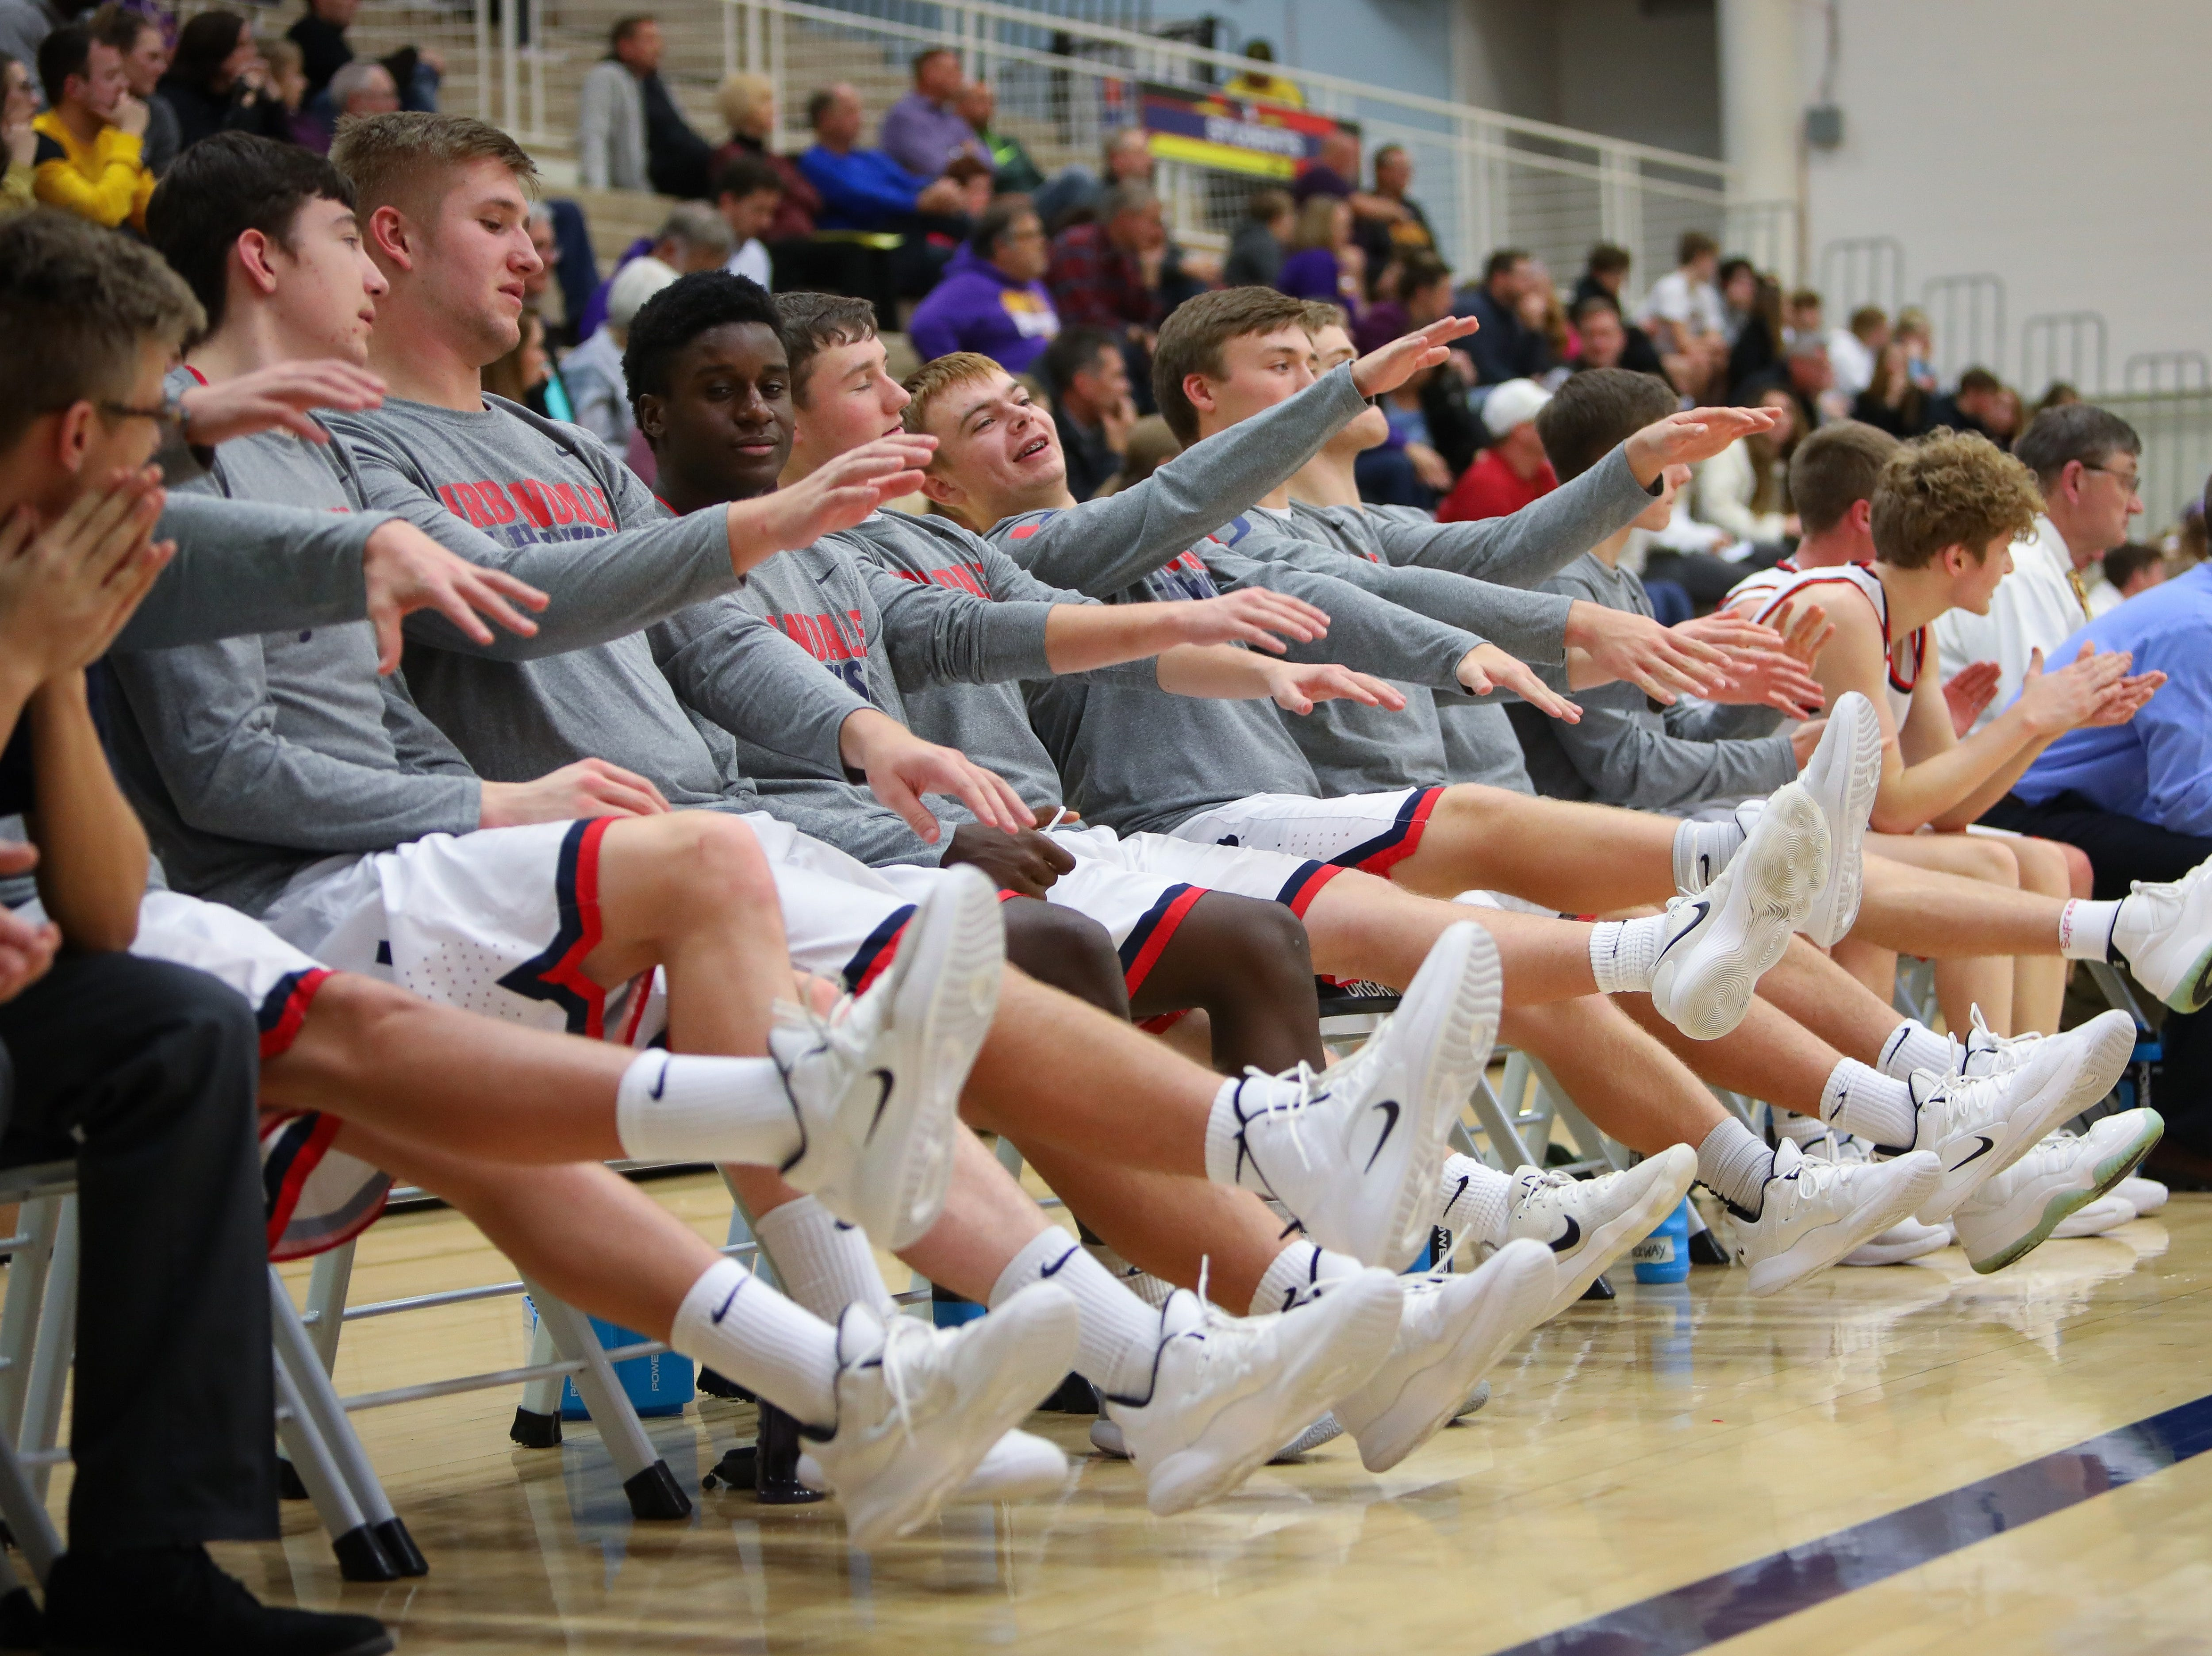 Members of the Urbandale bench celebrate after the J-Hawks drained a free throw against the Johnston Dragons during a boys high school basketball game at Urbandale High School on Dec. 18, 2018 in Urbandale, Iowa.